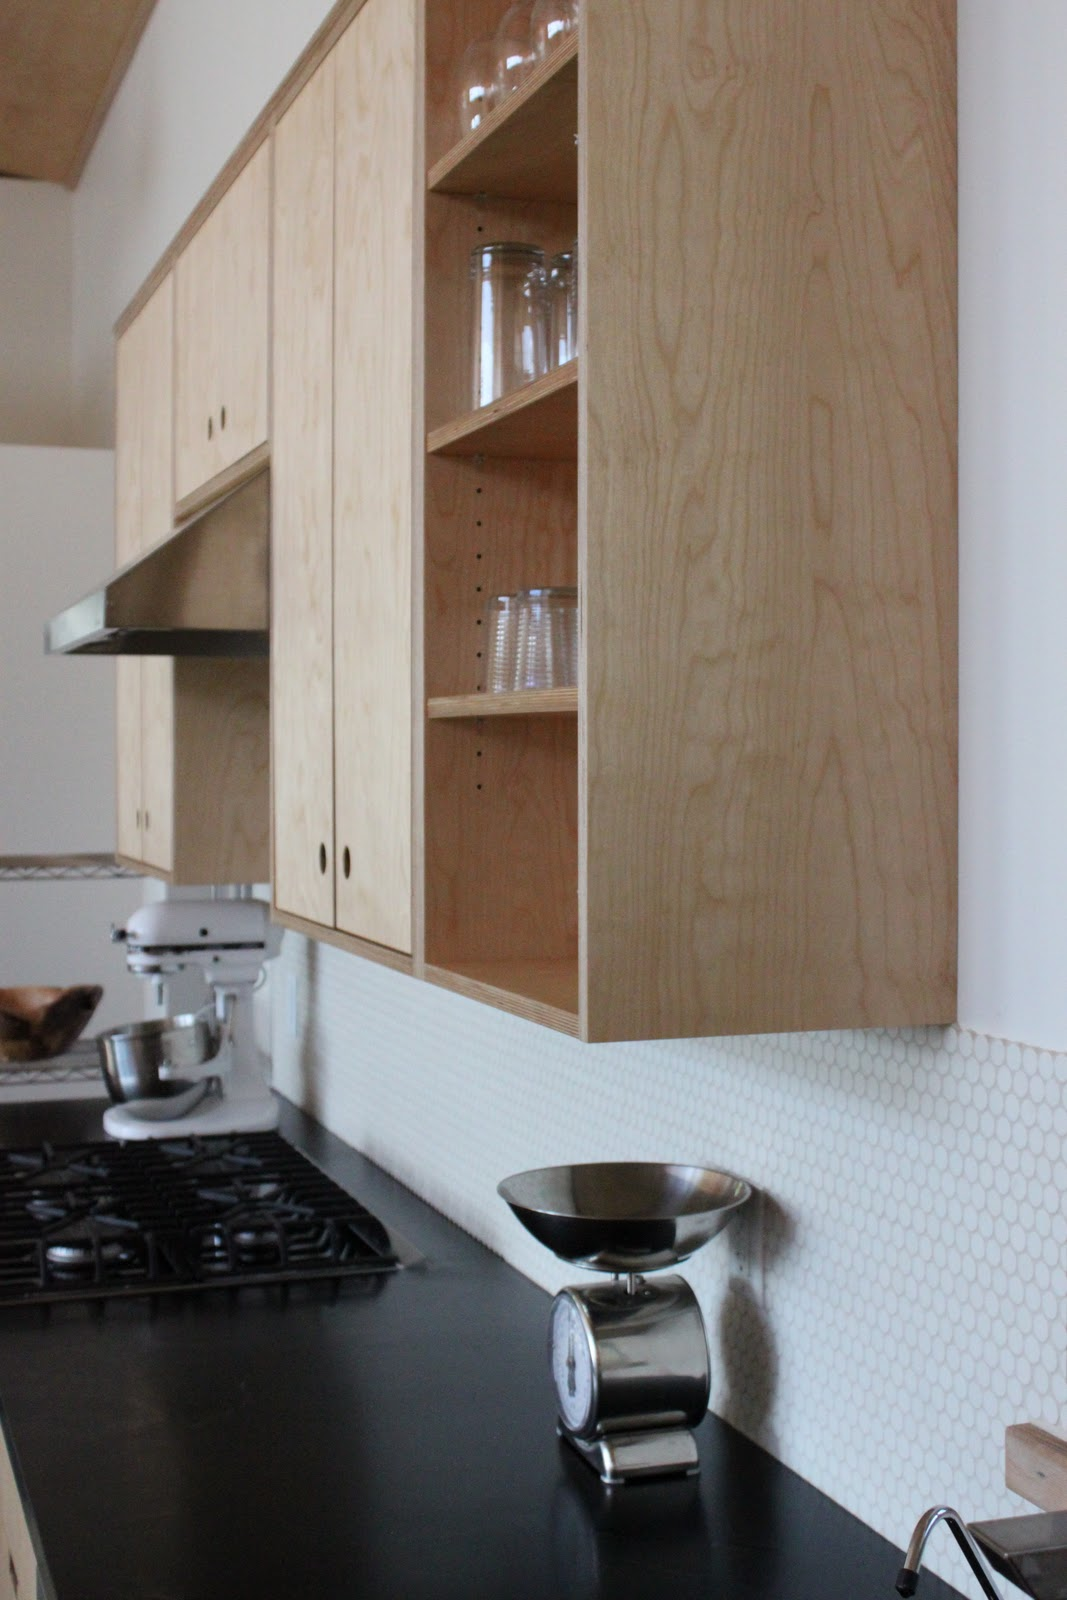 Penny Tile Backsplash Kitchen Costco Sink The Little Forest House March 2011